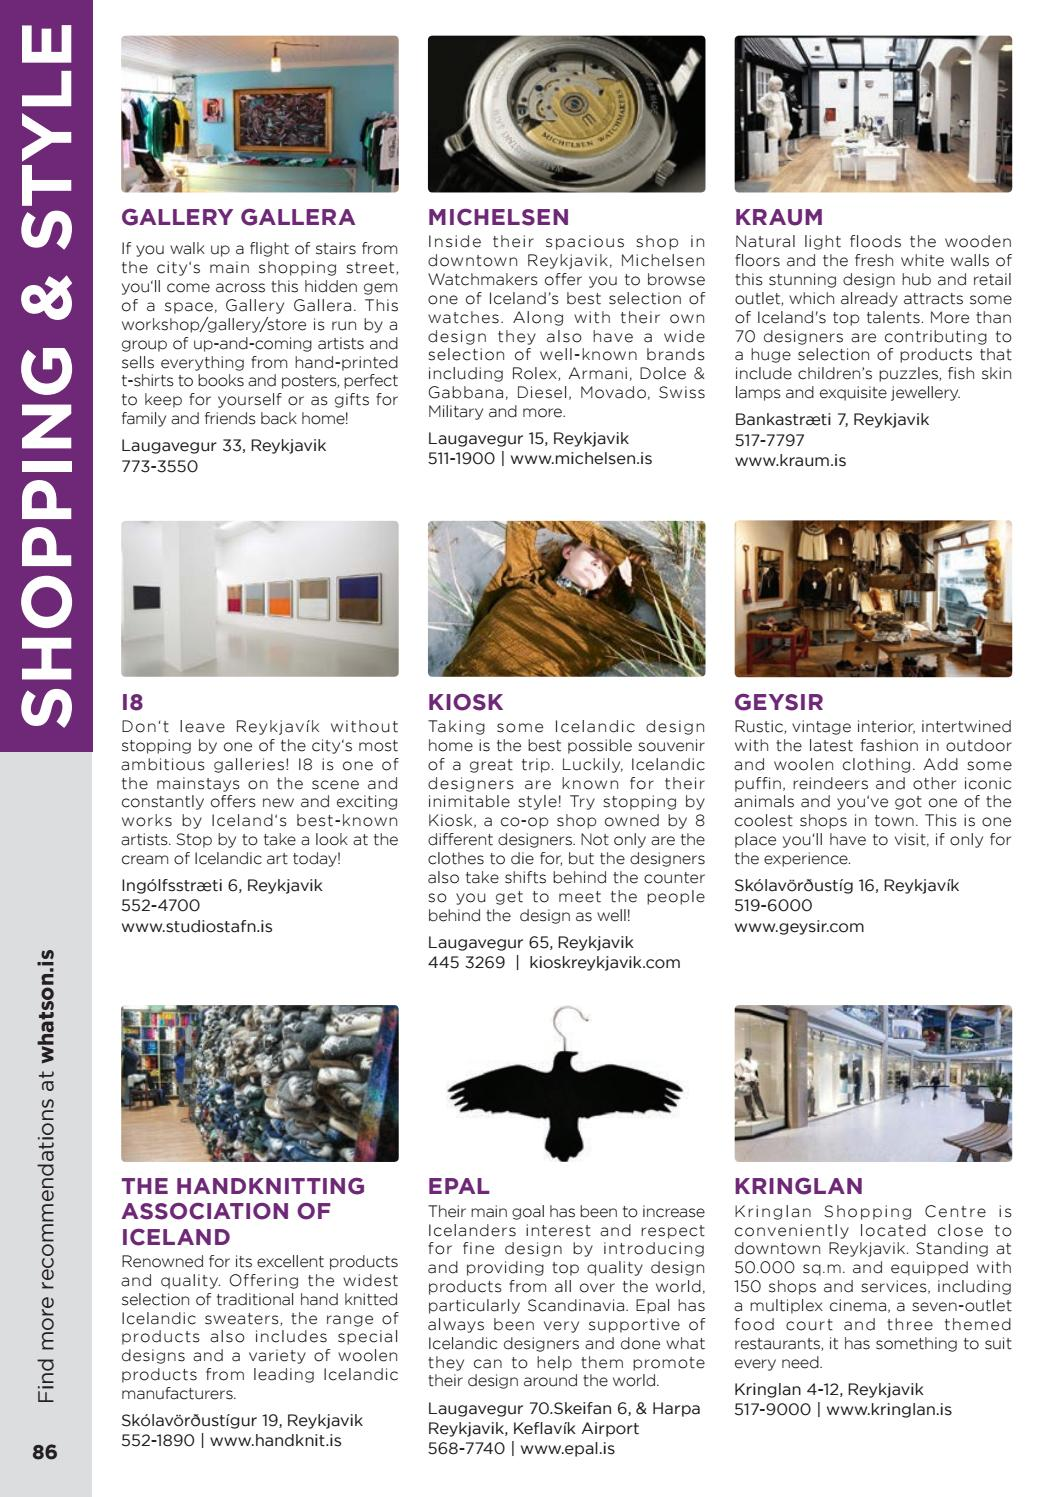 f652e95ed41c2 What's On in Reykjavik - January 2017 by MD Reykjavik - issuu